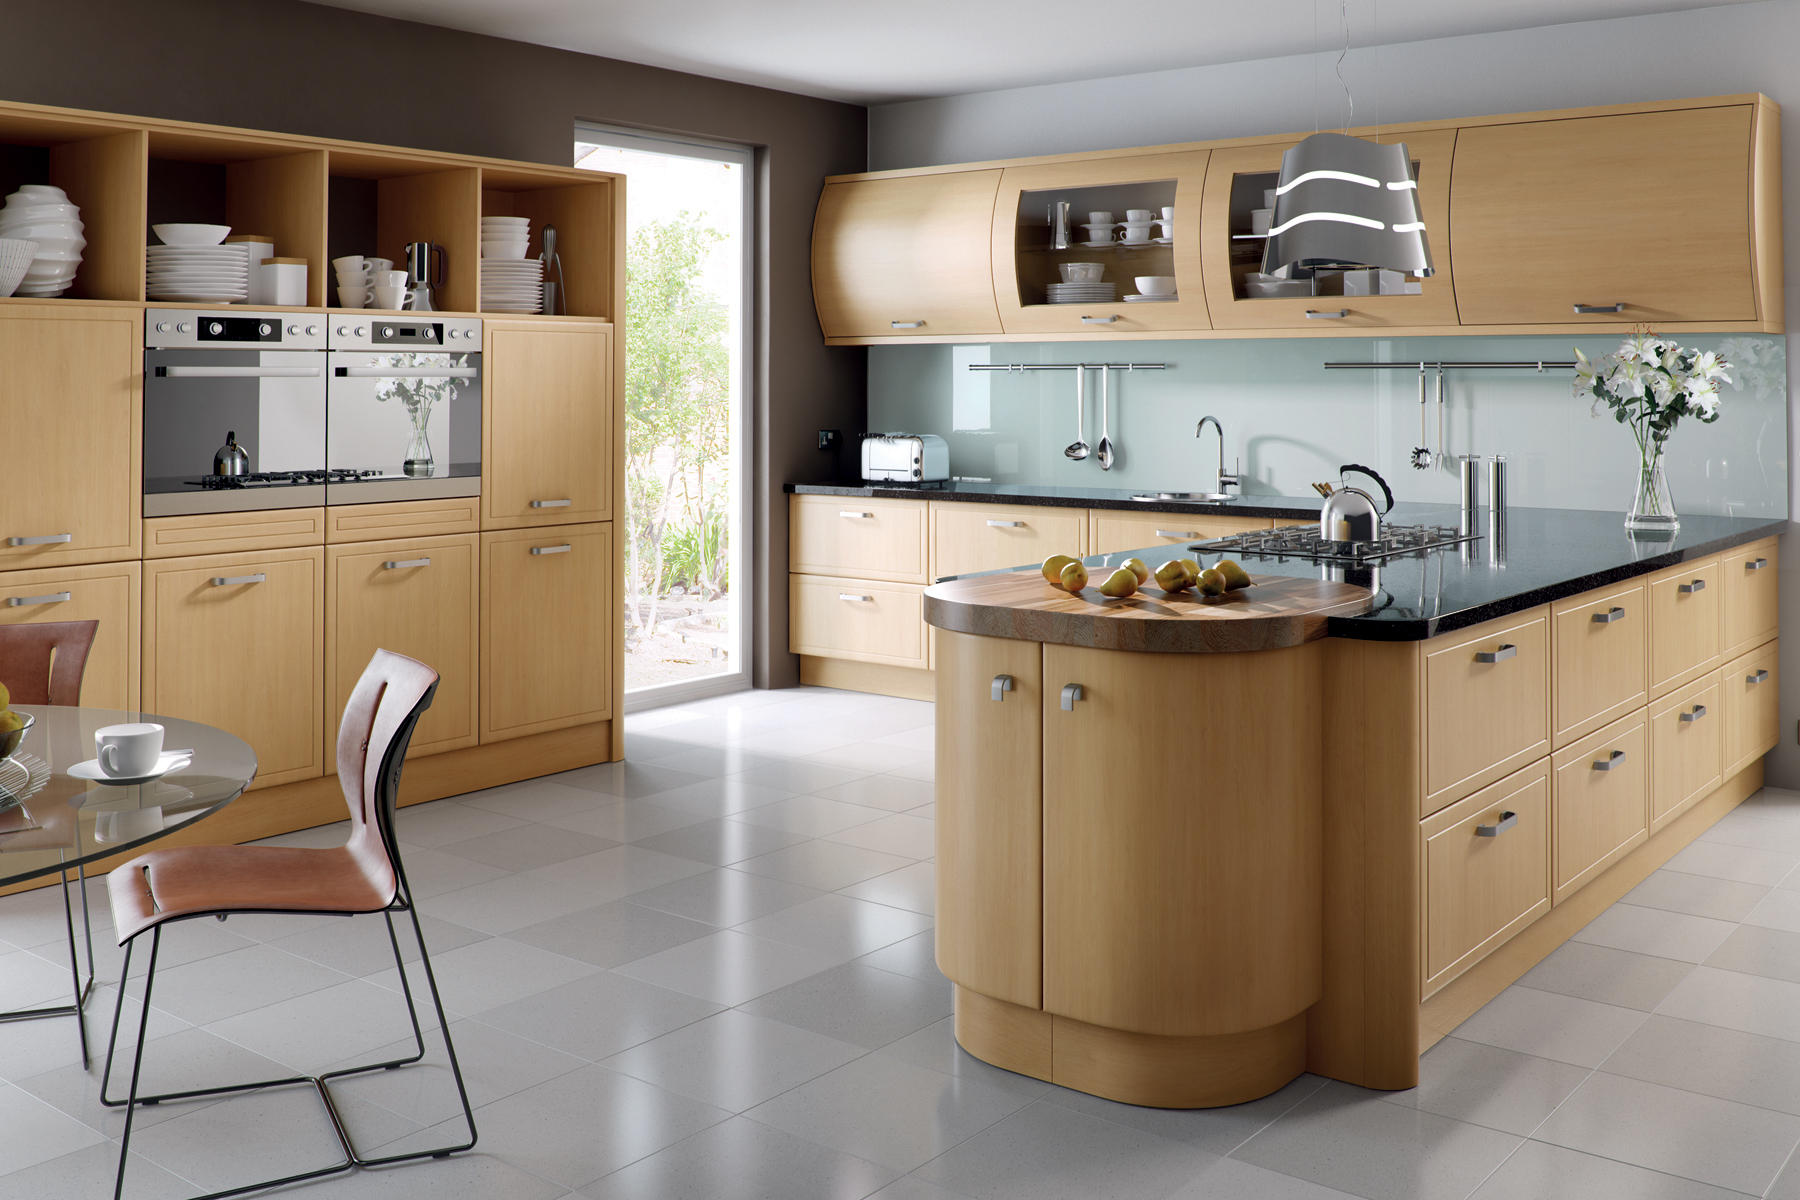 cashmere kitchen cabinets had a quote from wren kitchens bournemouth 2011